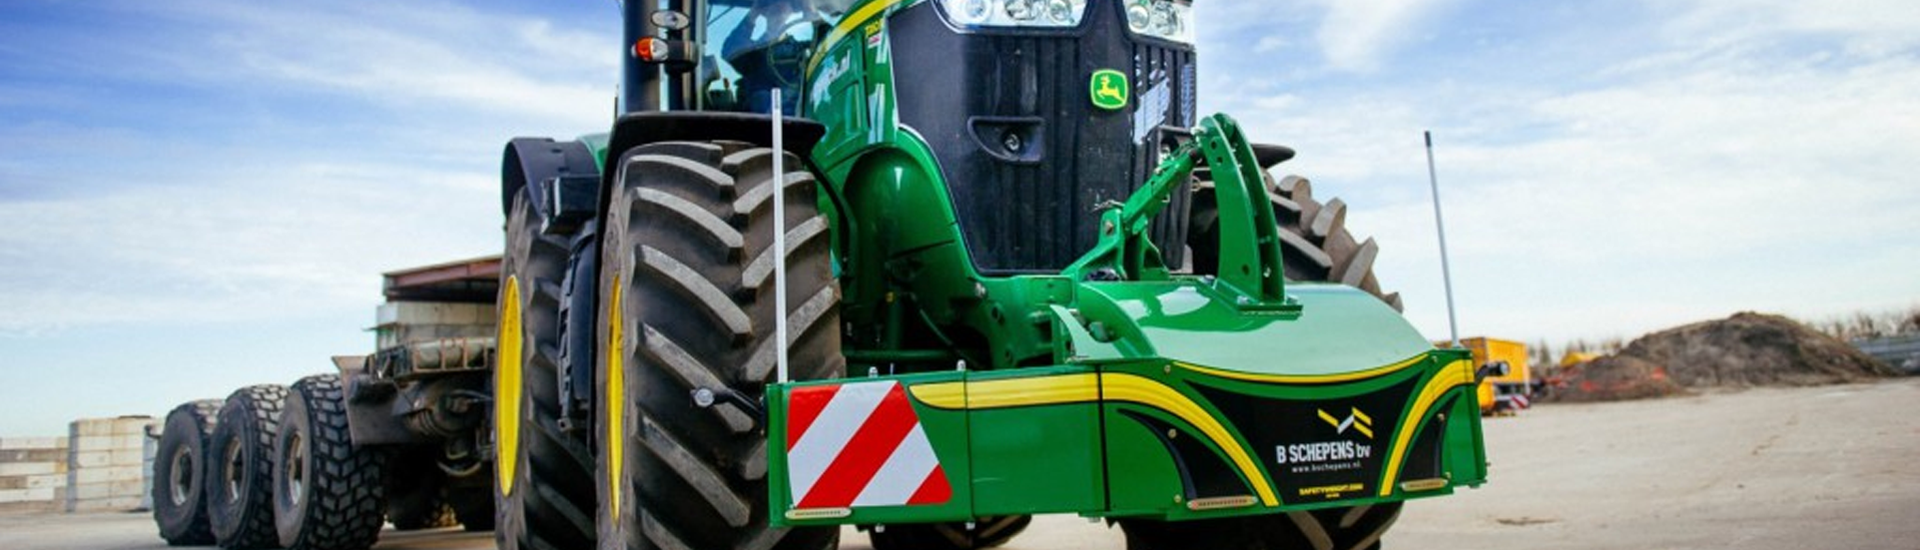 Tractorbumper ab sofort bei uns